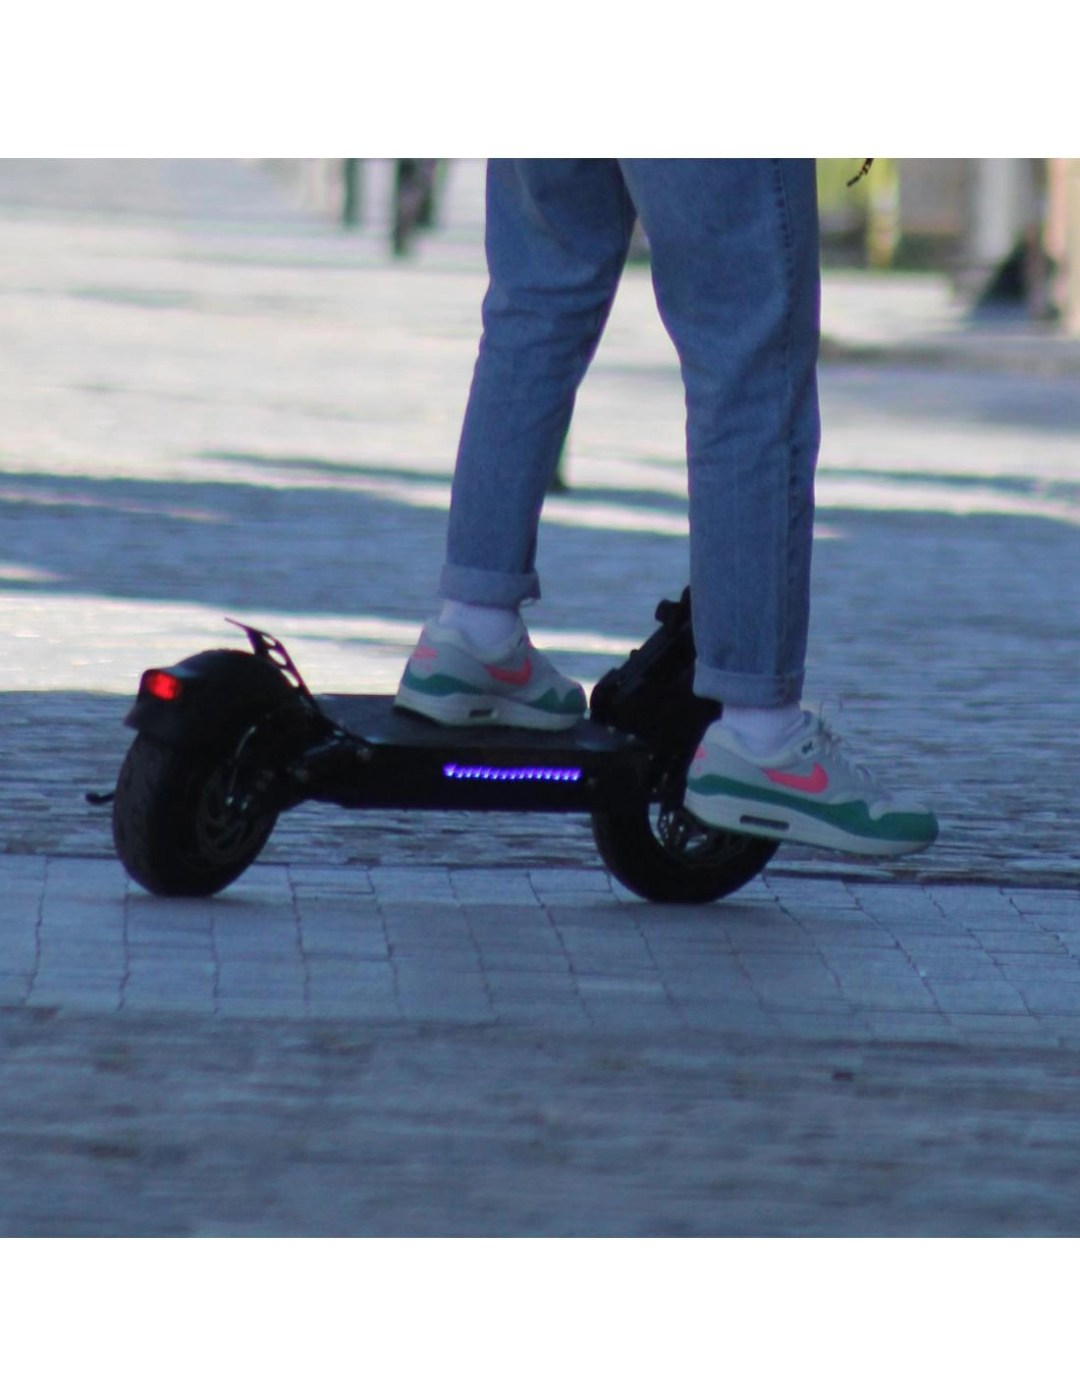 Patinete eléctrico smartgyro speedway v20 luces